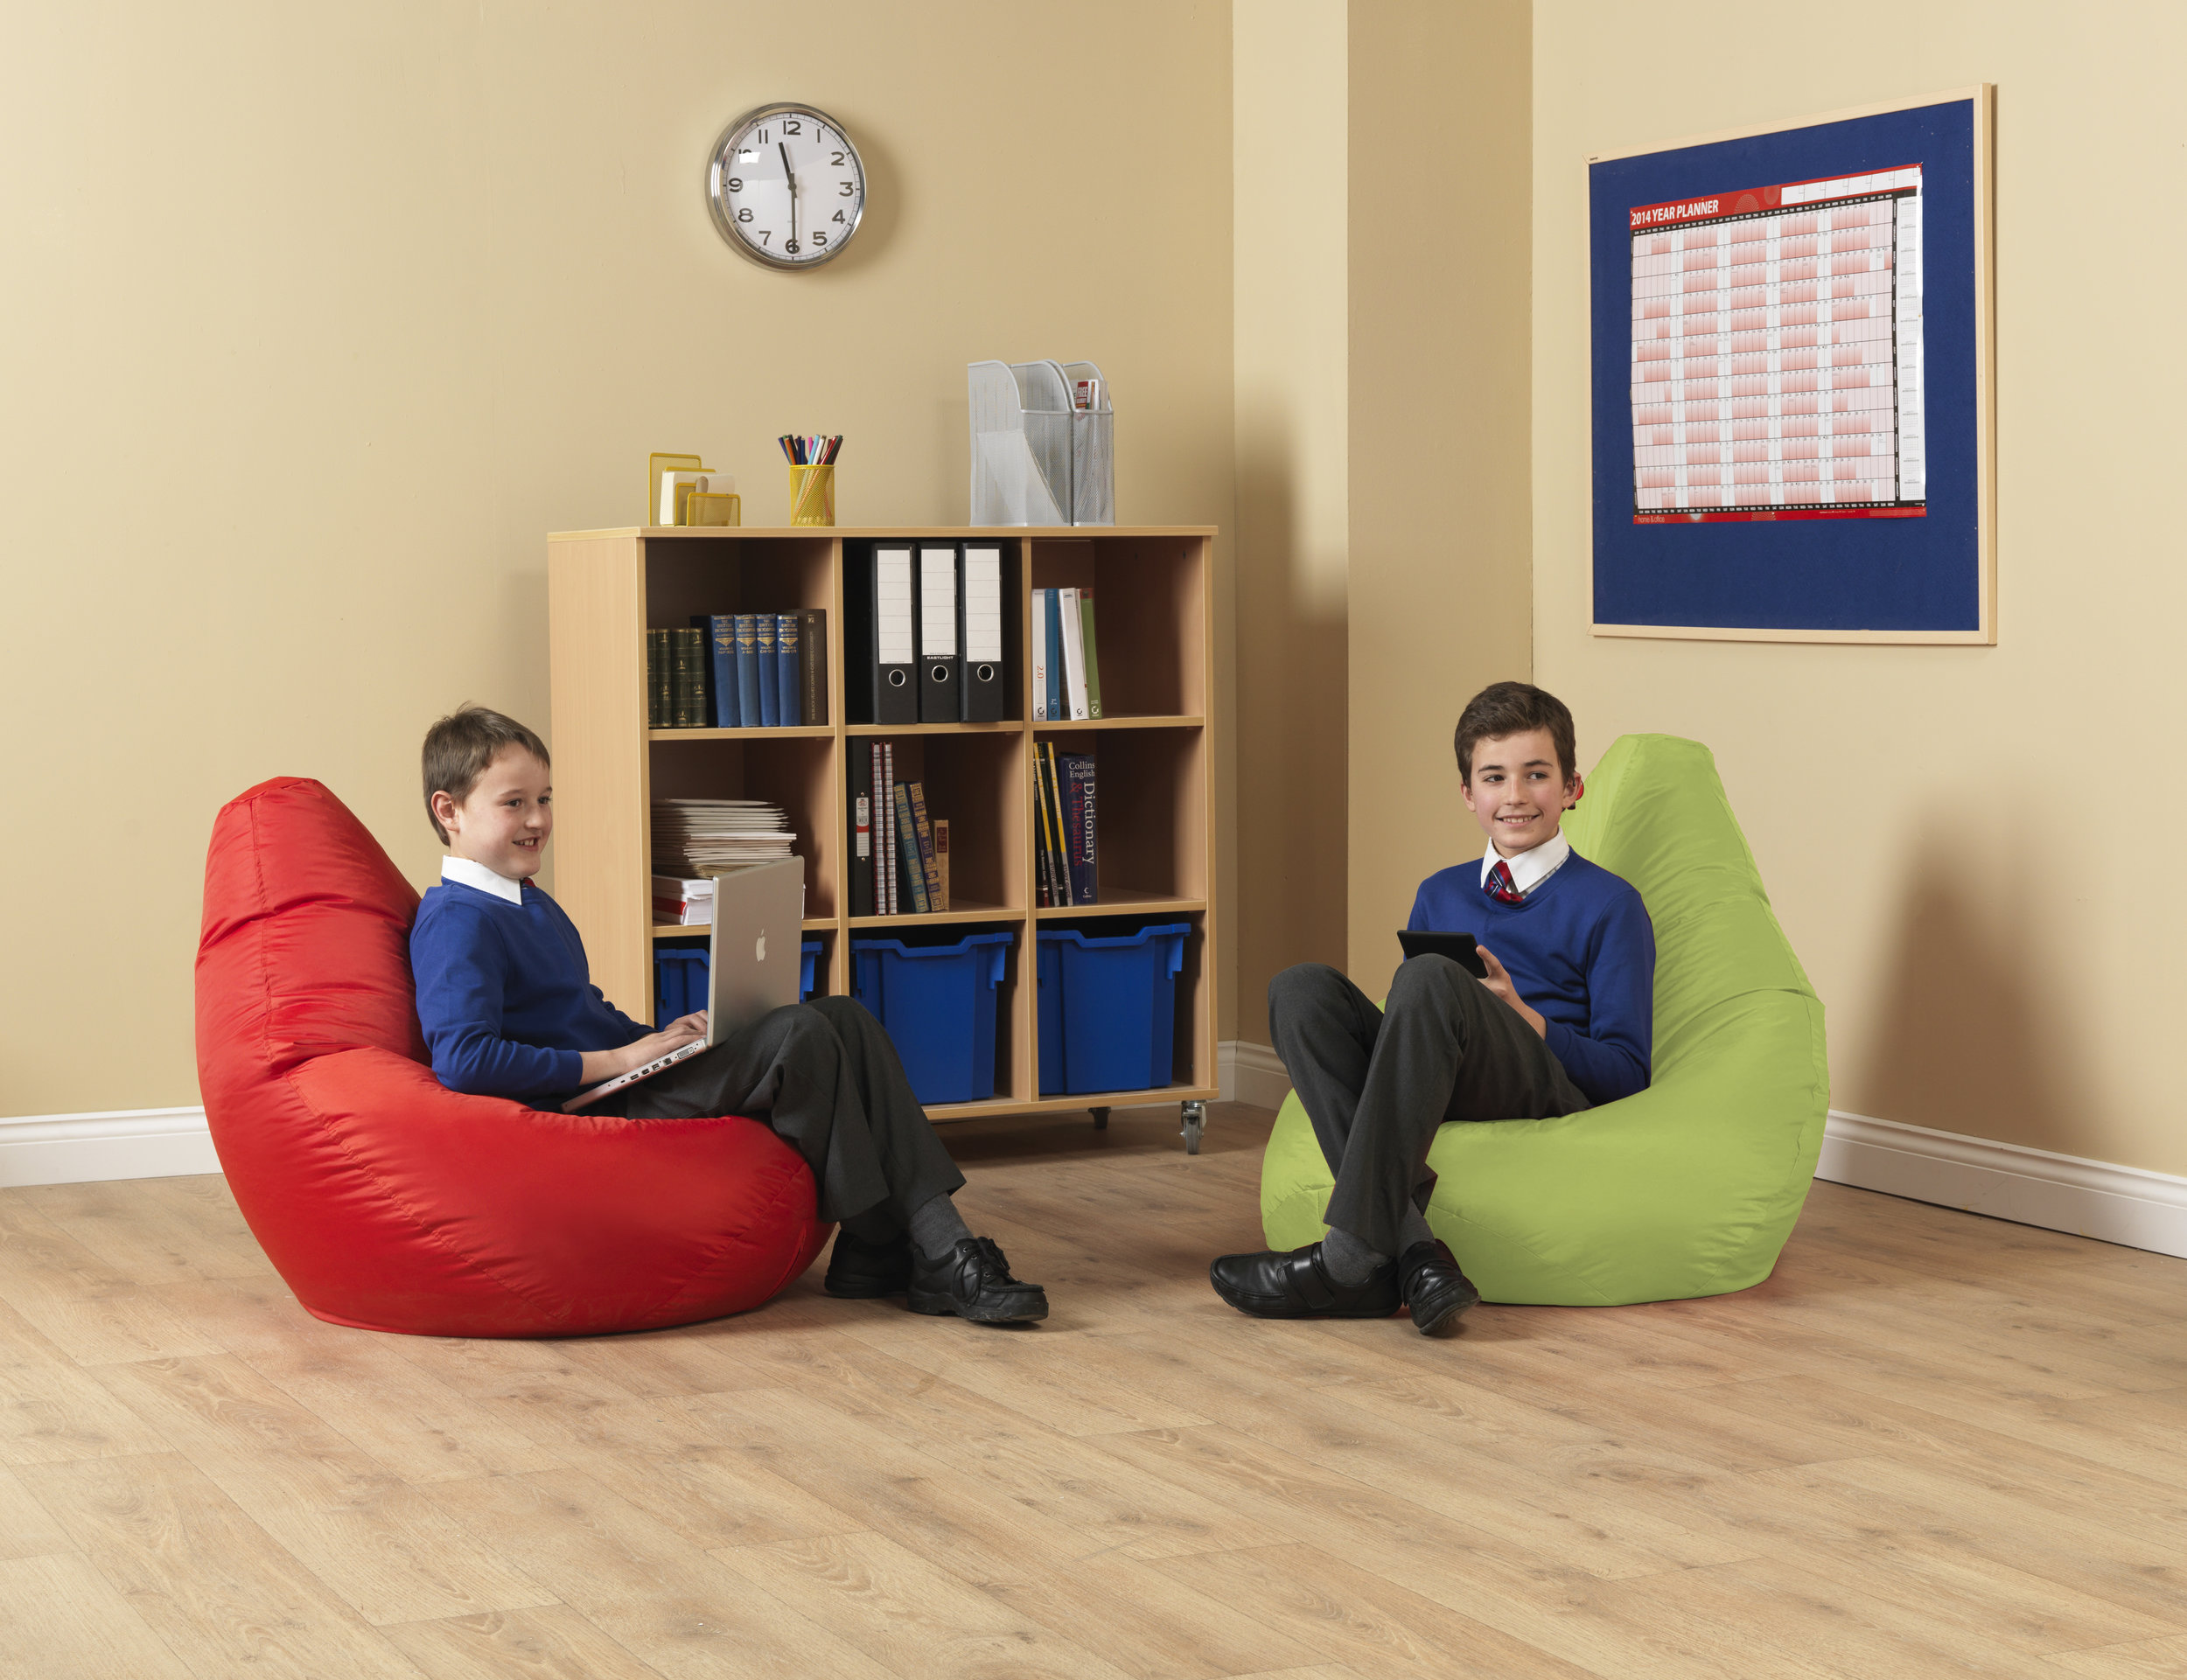 Eden-Large-Reading-Pod-OD-3-lime-300dpi.jpg